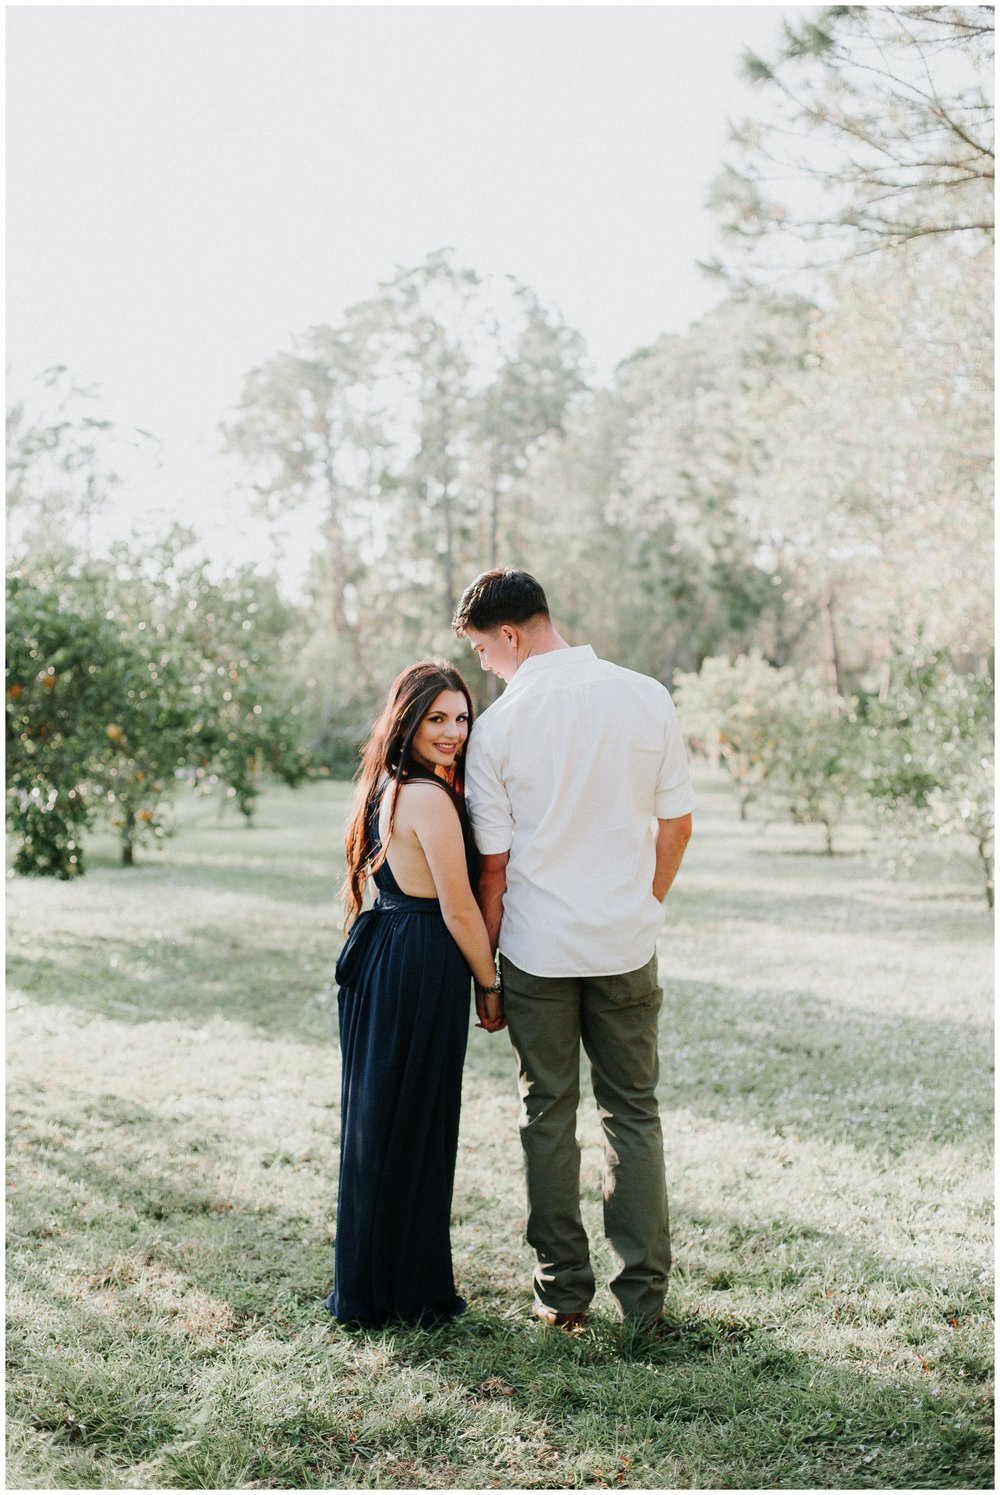 BMR Stables Wedding-BMR Stables Engagement Session-Jupiter Wedding Photographer-South Florida Wedding Photographer-Palm Beach Wedding Photographer-Jupiter Engagement Photos- Kimberly Smith Photography_0022.jpg